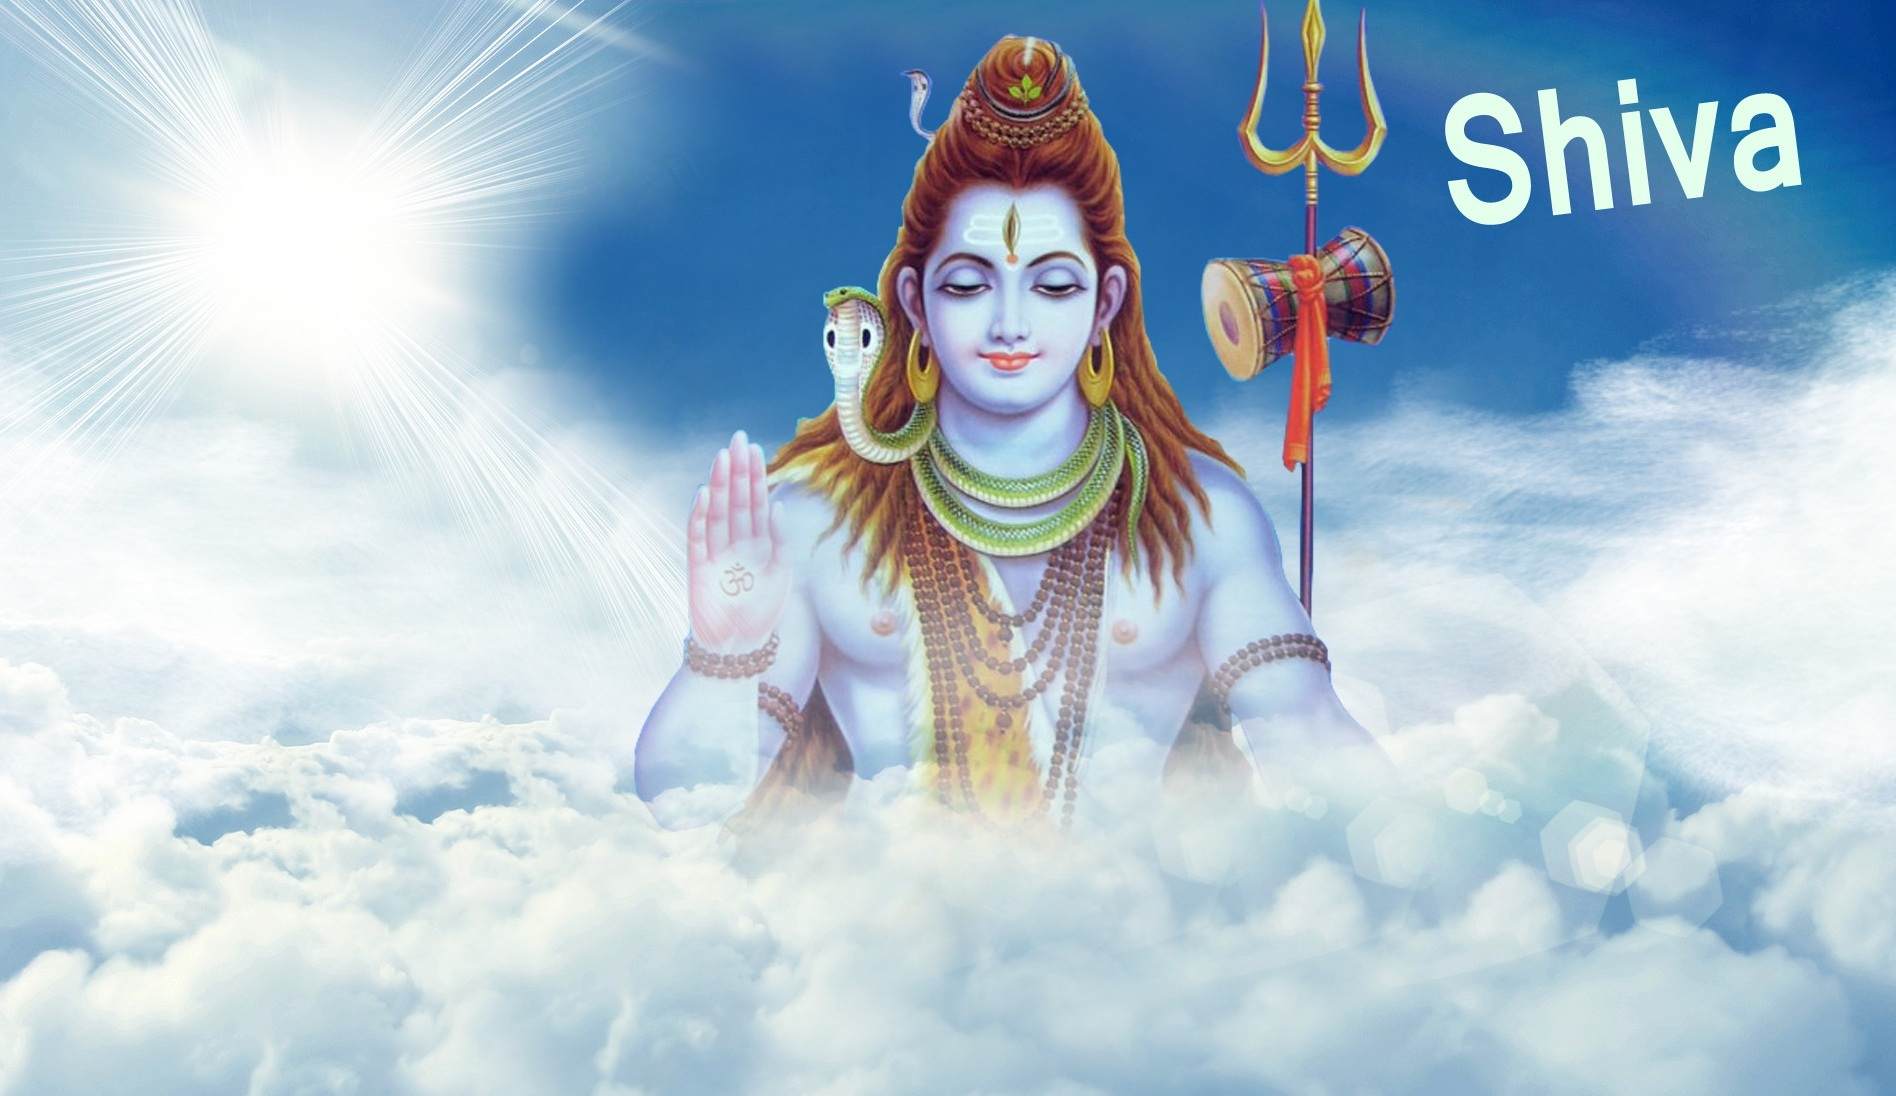 Shiva Lord Hd Images: Lord Shiva Images [Wallpapers] & God Shiva Photos In HD